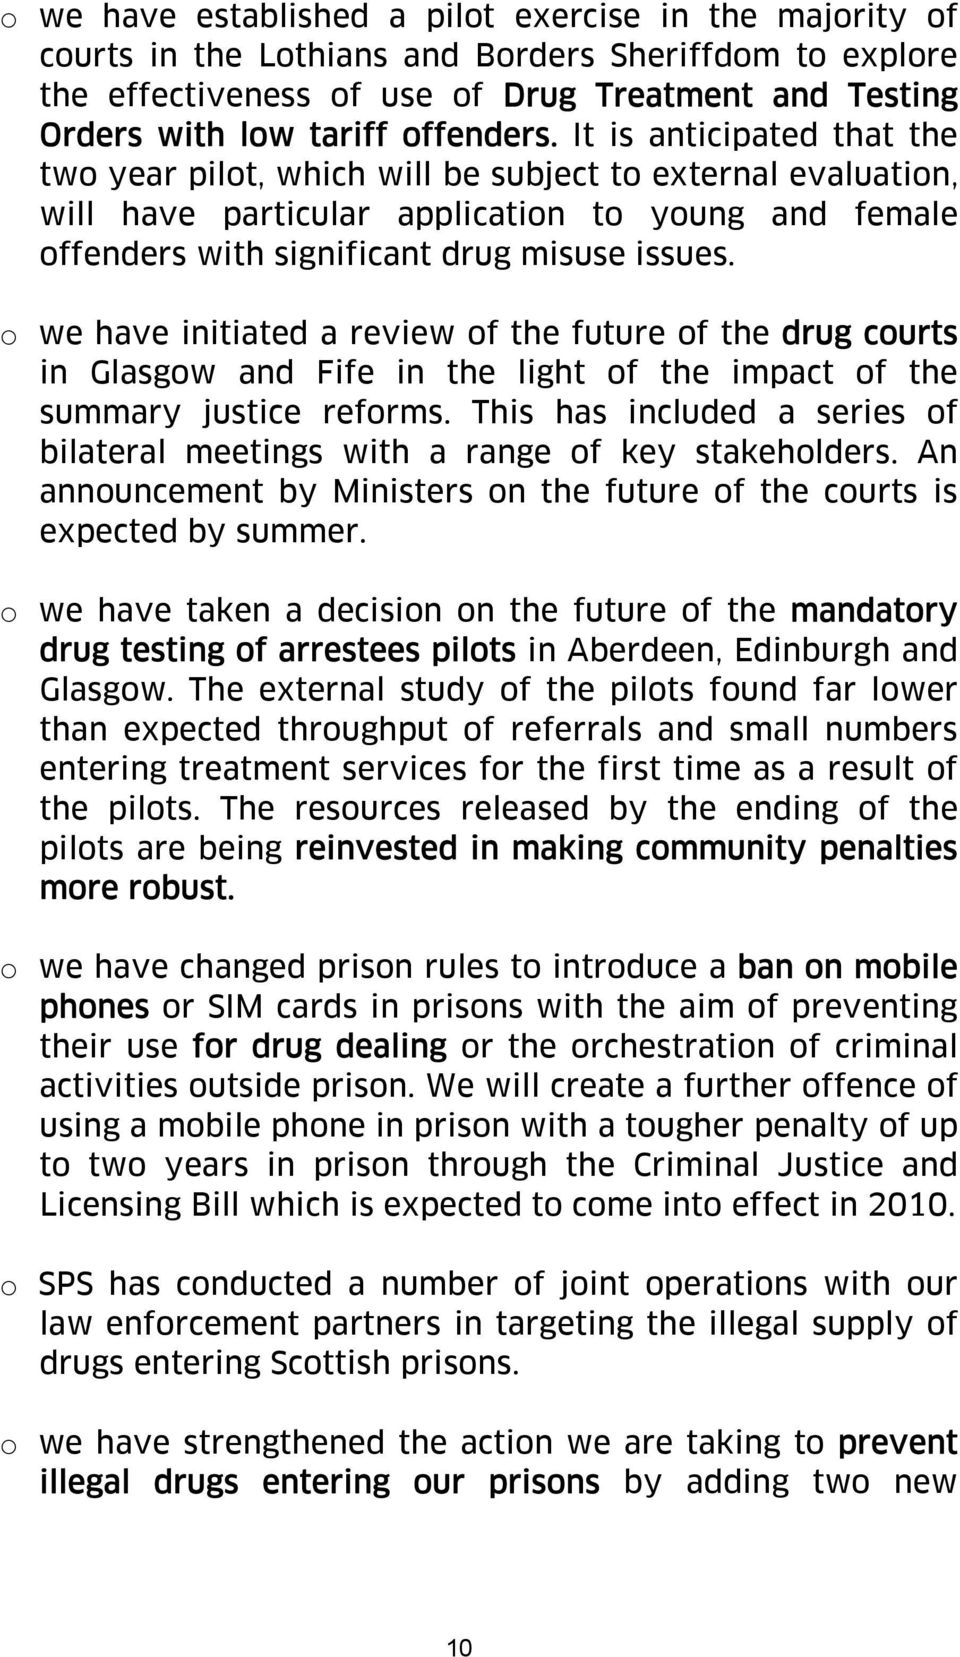 o we have initiated a review of the future of the drug courts in Glasgow and Fife in the light of the impact of the summary justice reforms.